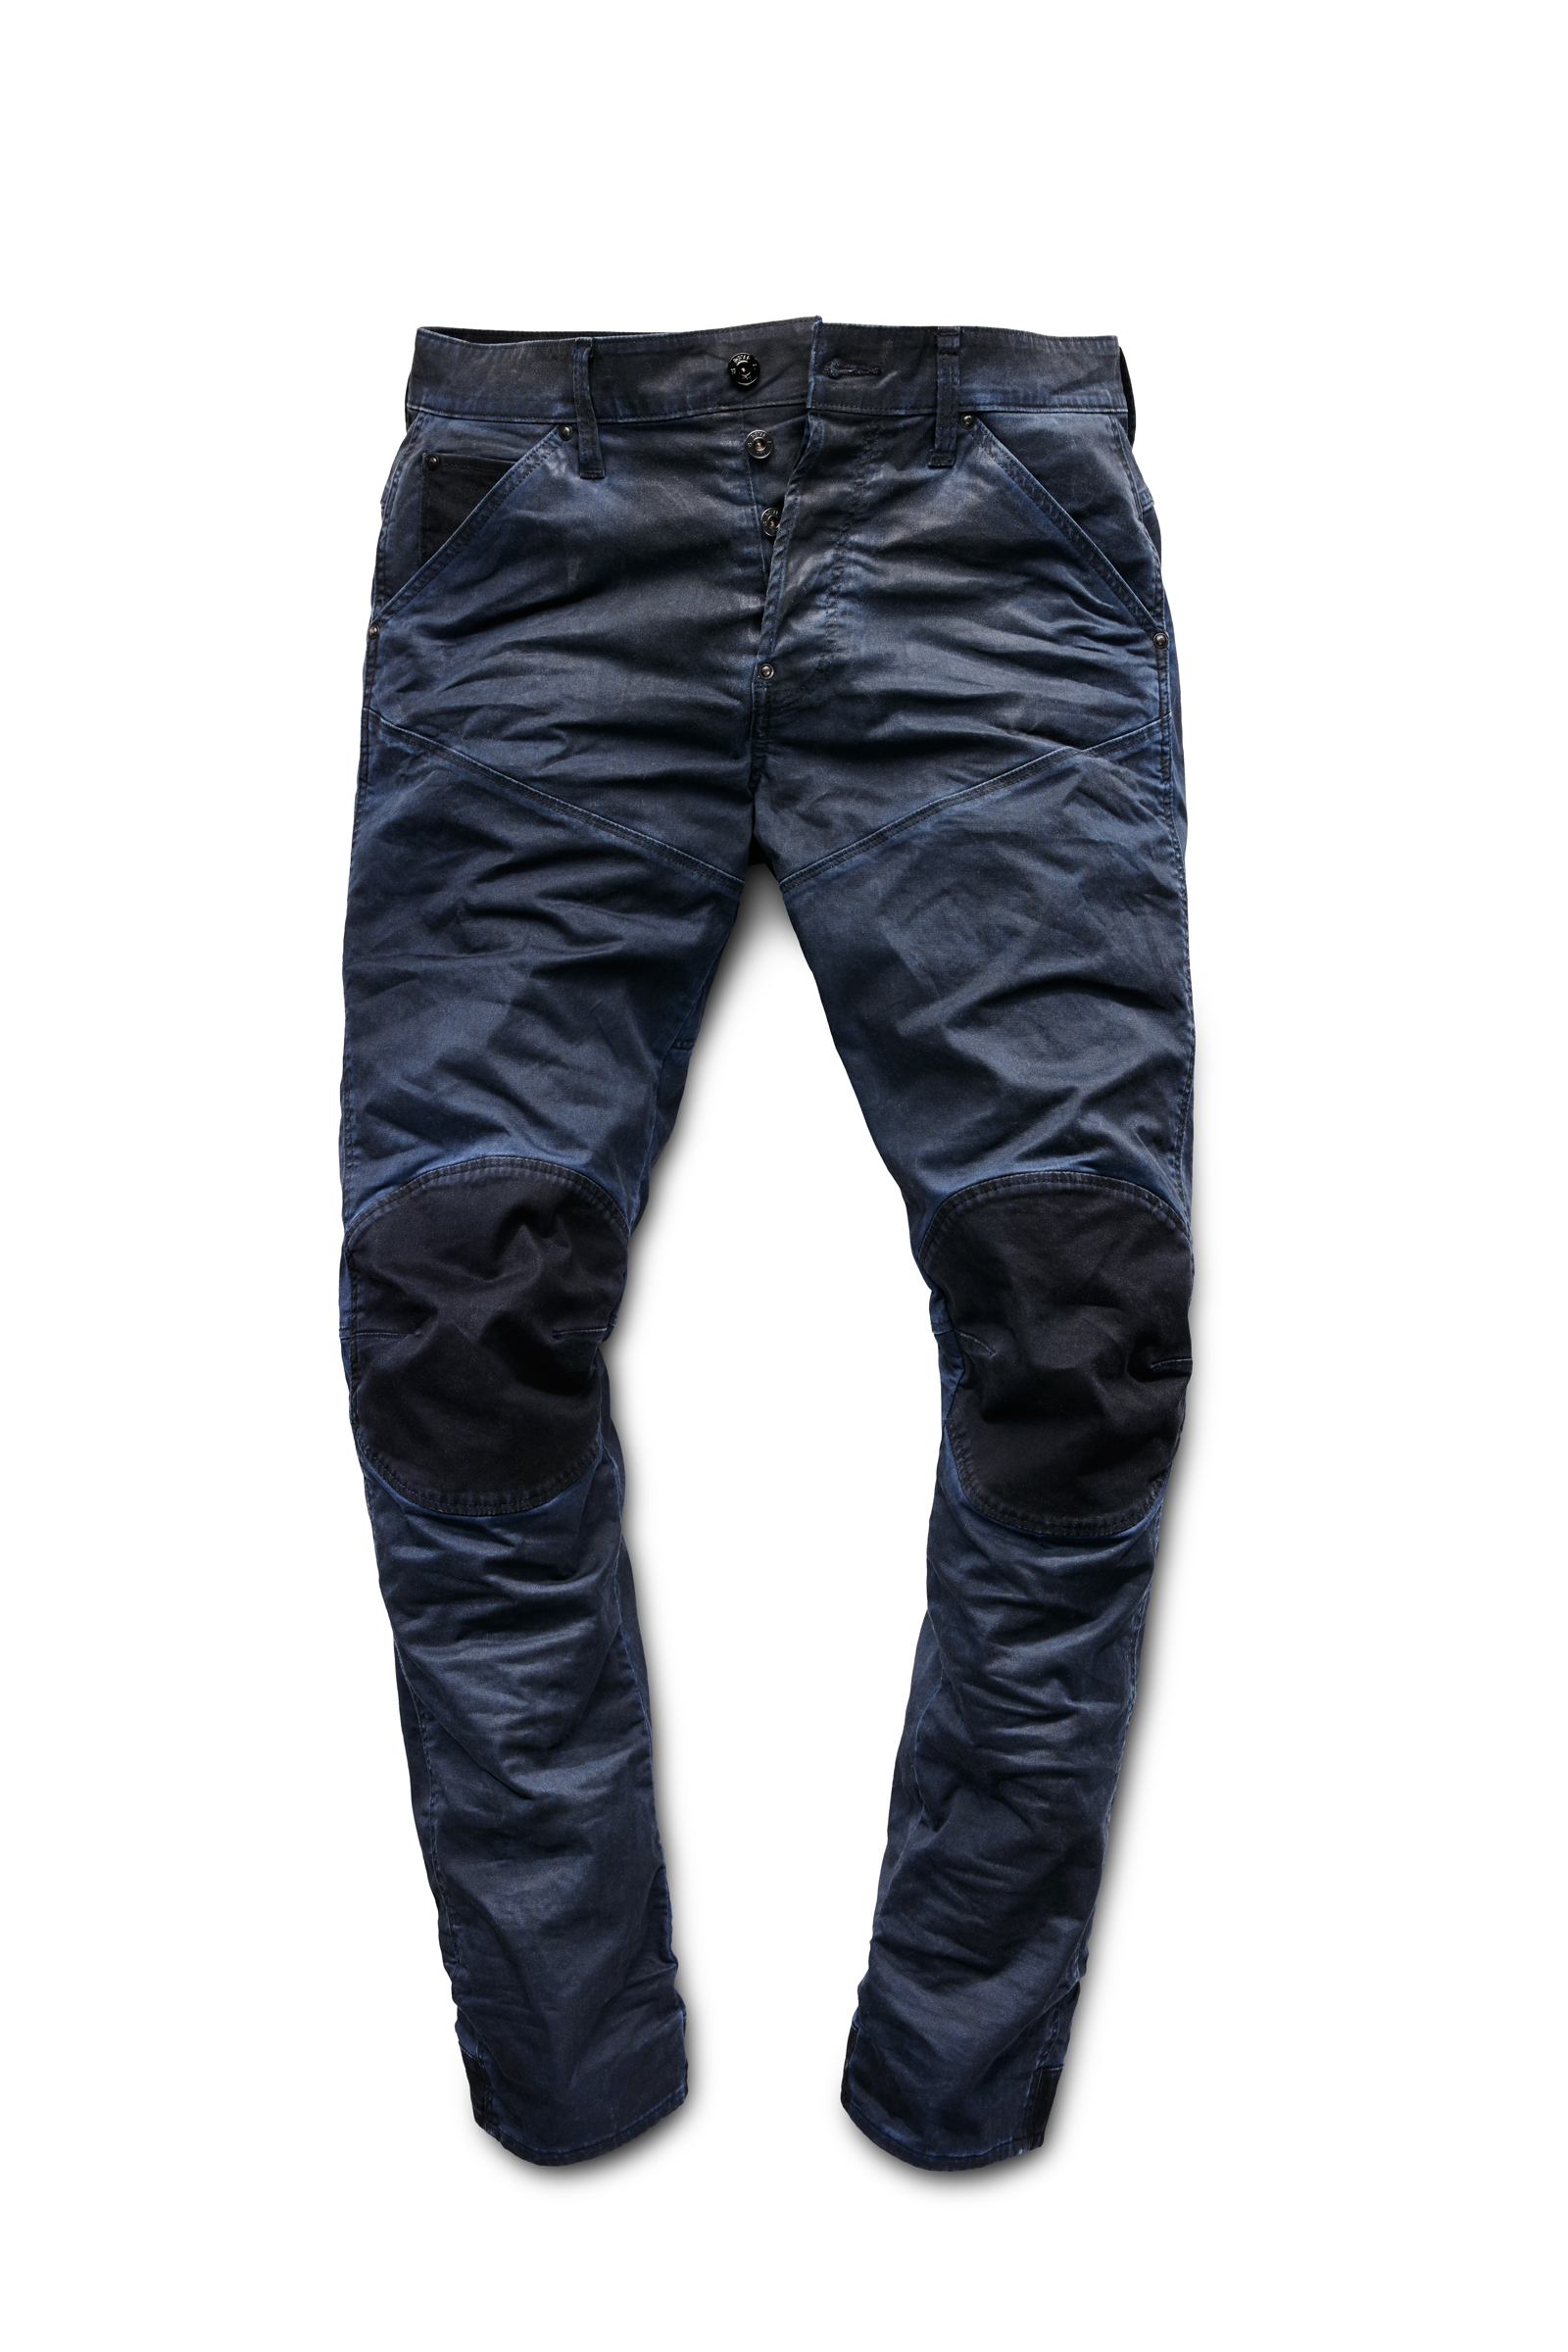 g star elwood 5620 jeans 20 years of style crash